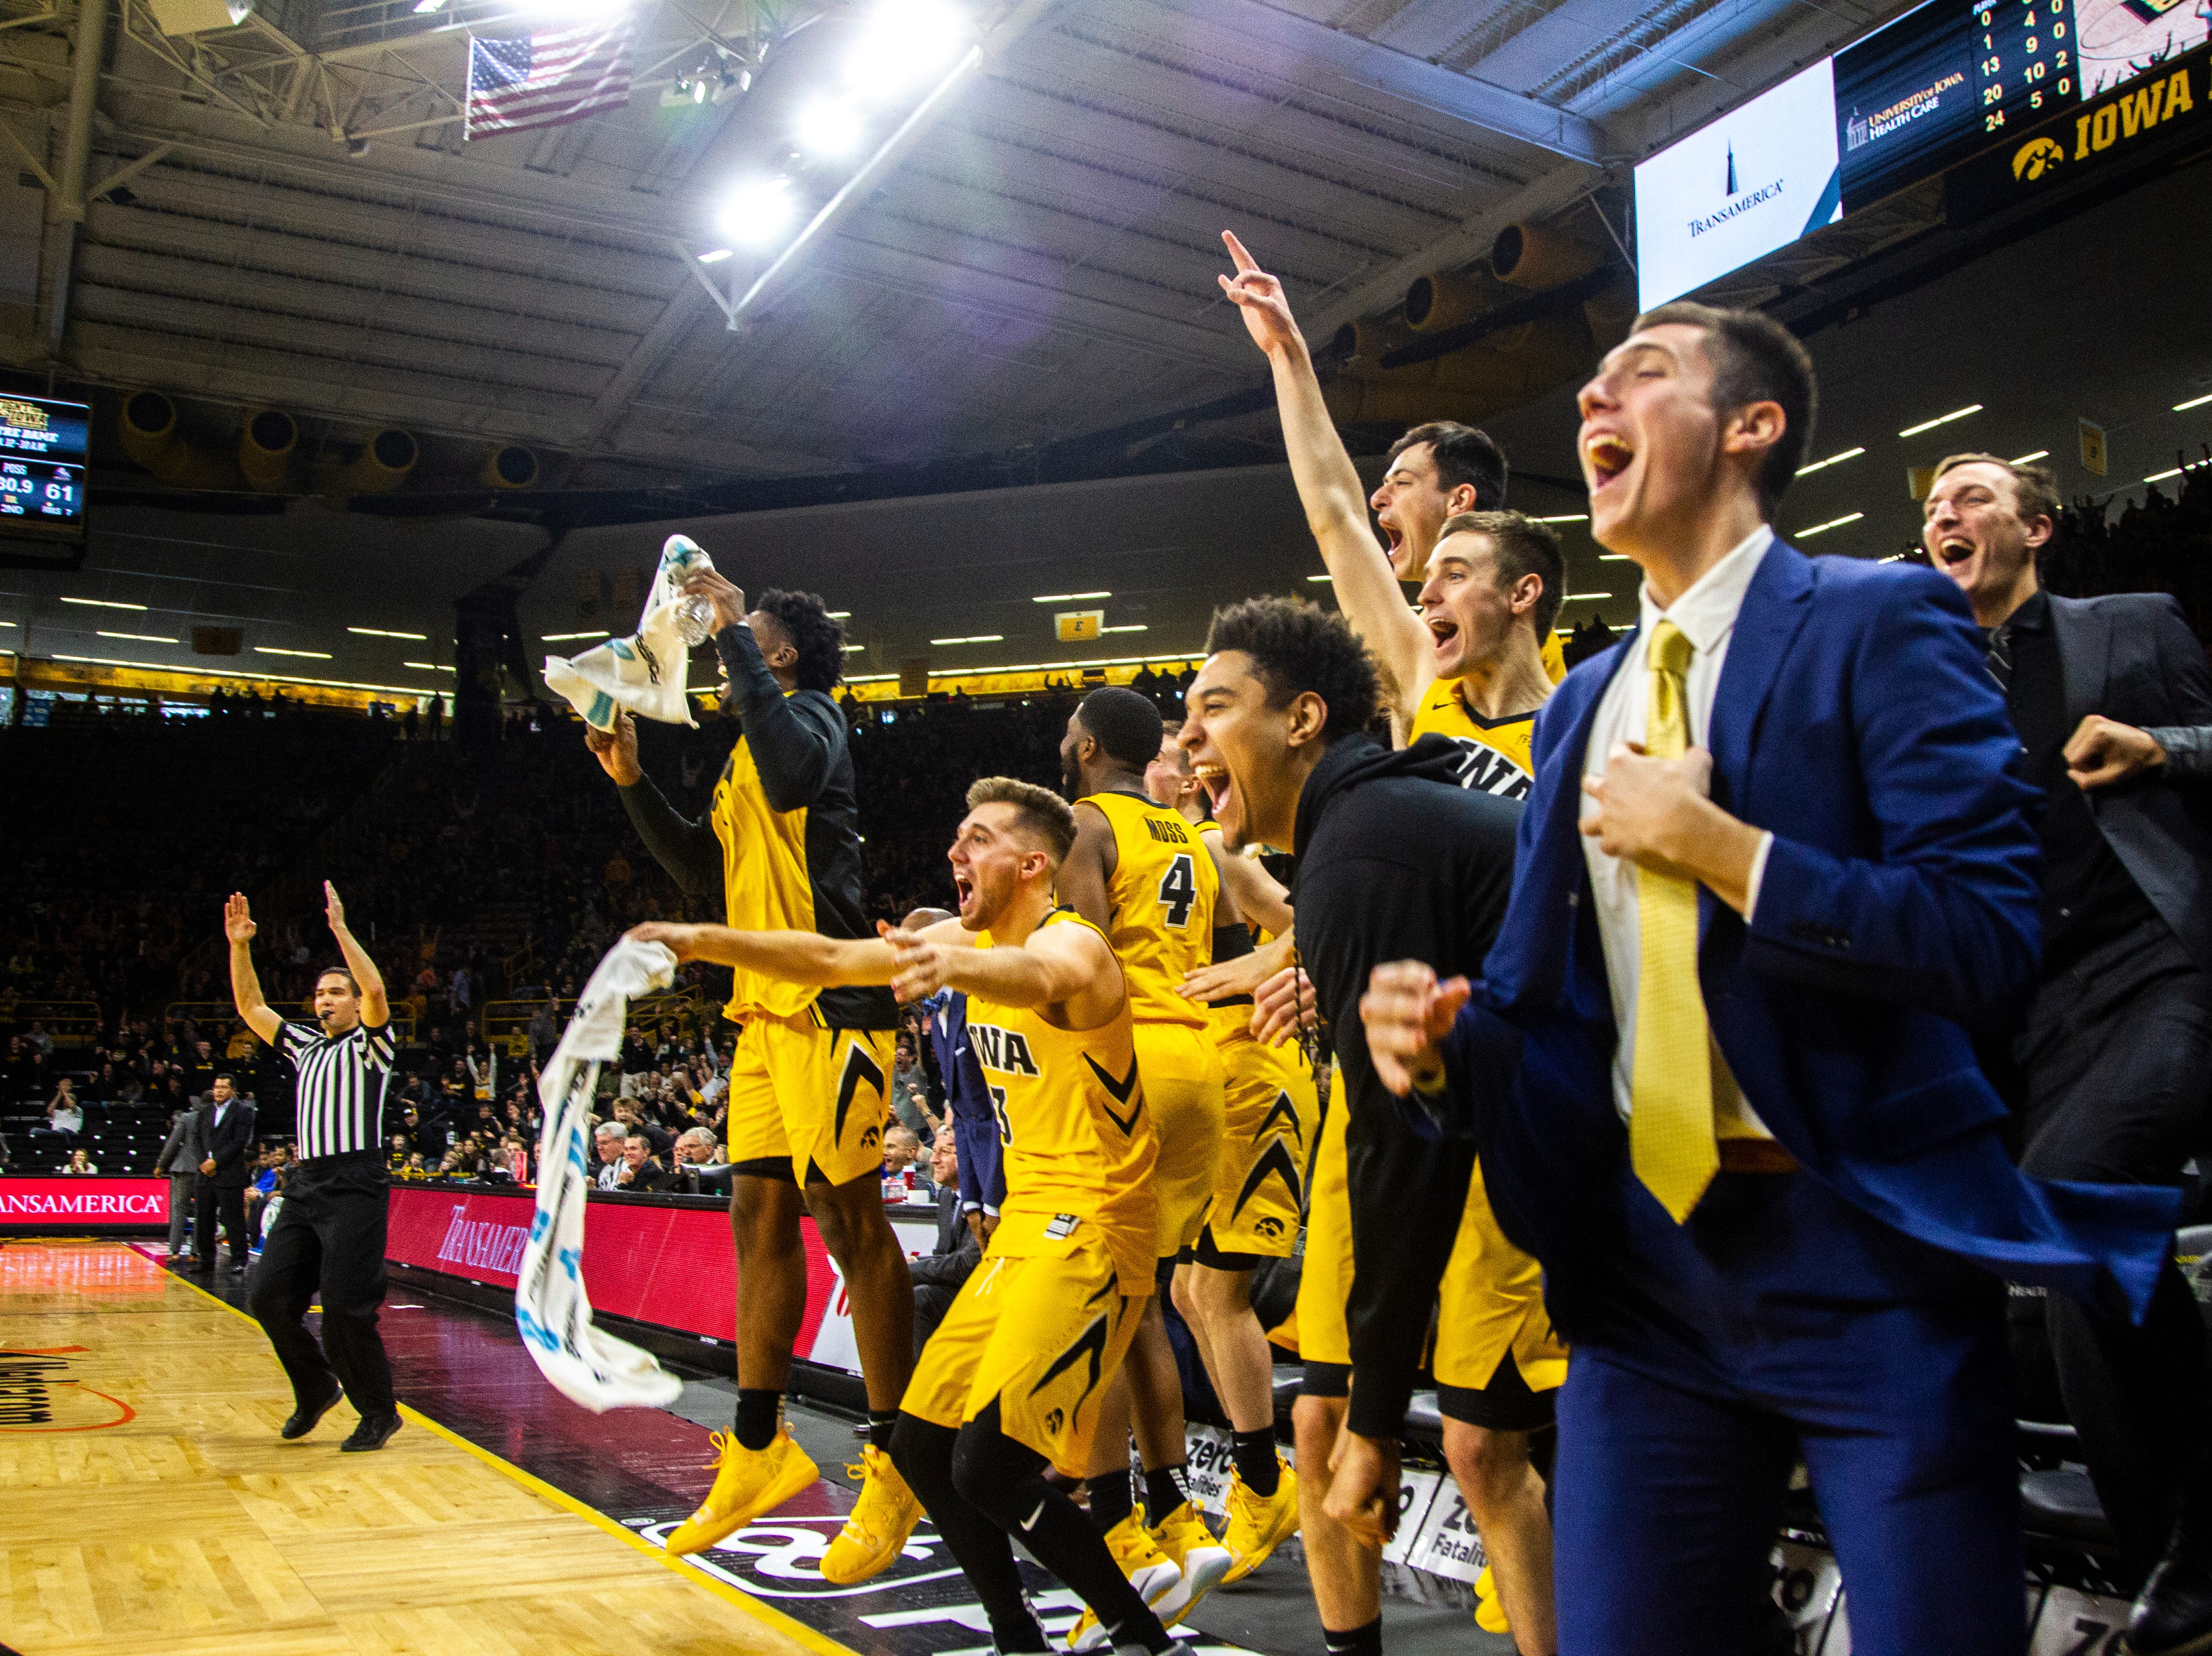 Iowa Hawkeyes players celebrate following a 3-point basket from Michael Baer during a NCAA men's basketball game on Saturday, Dec. 22, 2018, at Carver-Hawkeye Arena in Iowa City. The Hawkeyes defeated Savannah State, 110-64.